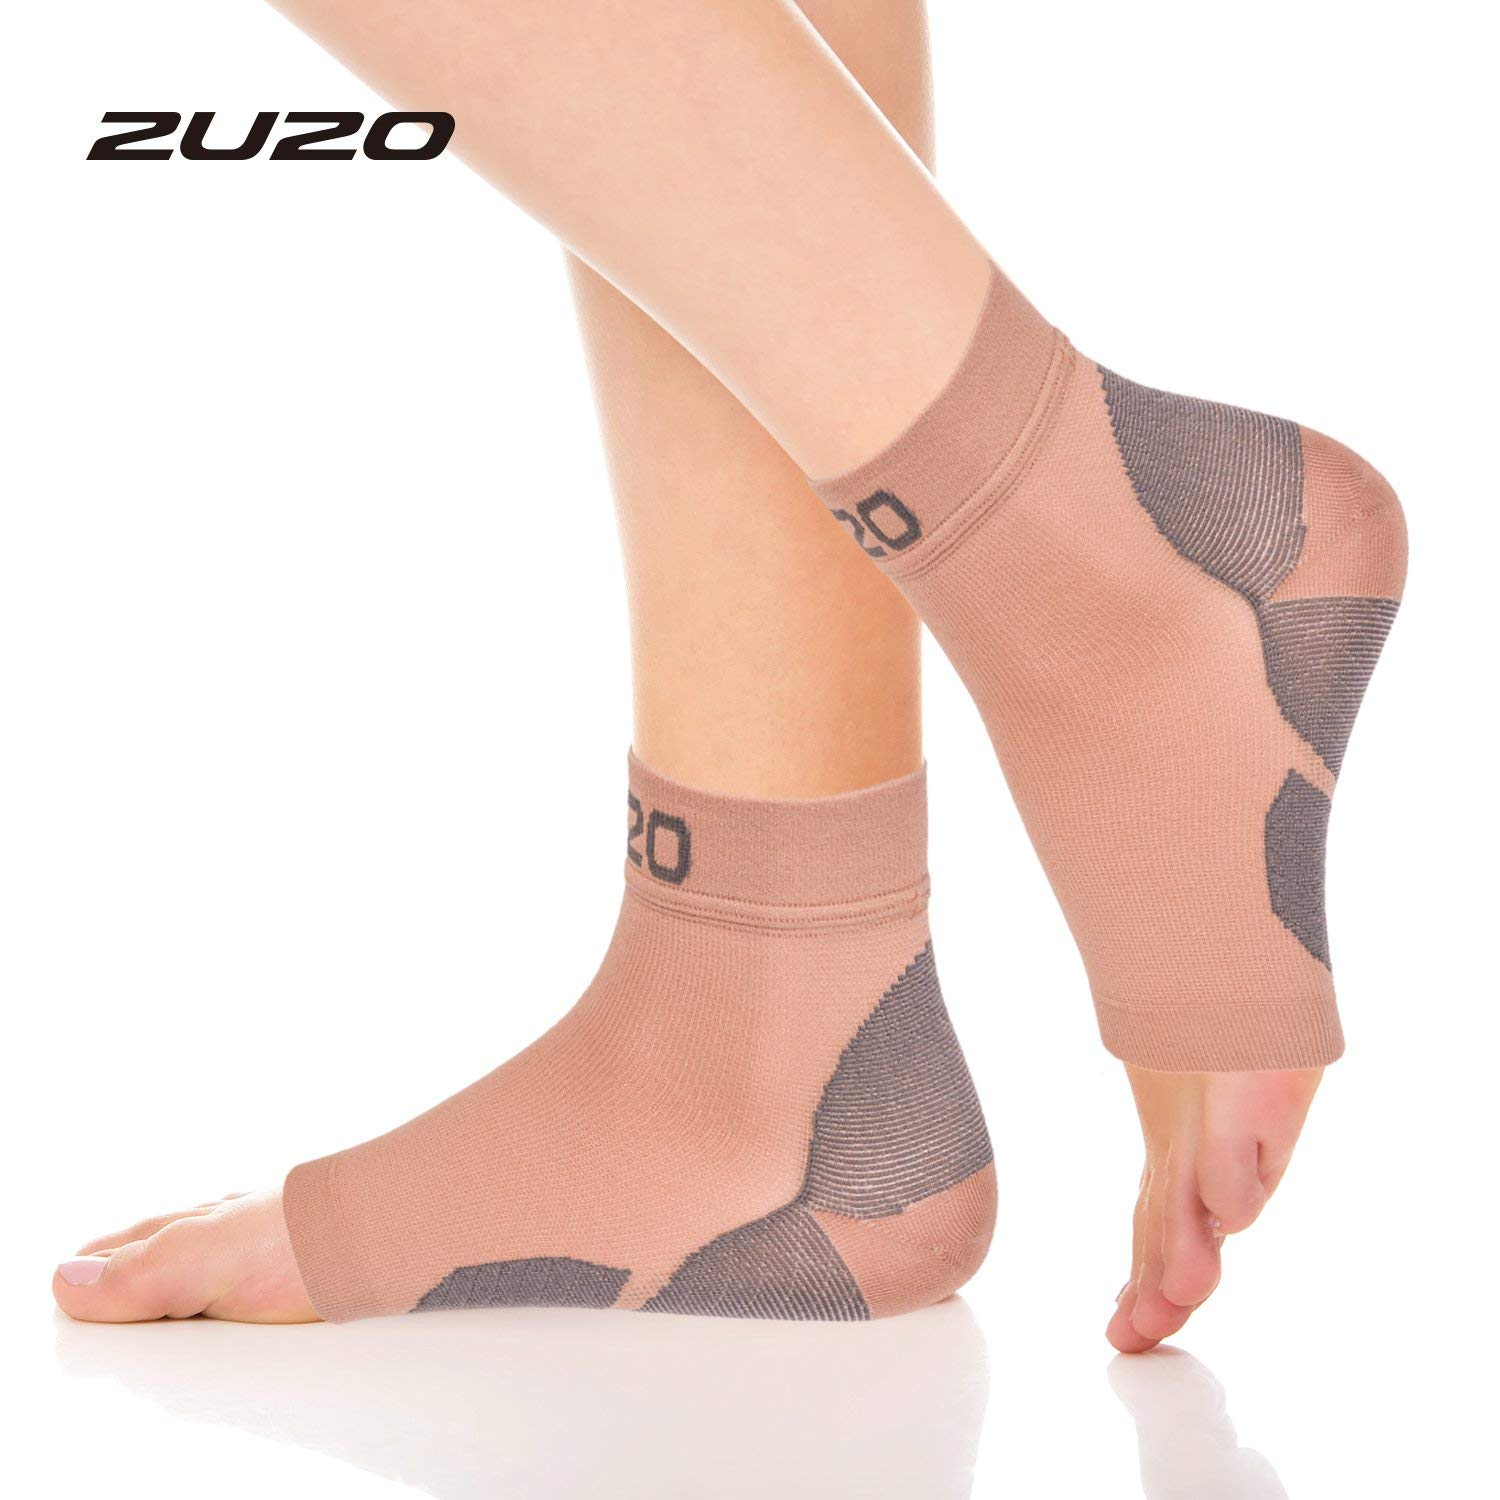 a7b80aba29 Get Quotations · 2U2O Compression Plantar Fasciitis Socks-Compression Foot  Sleeves for Men & Women, Arch Pain